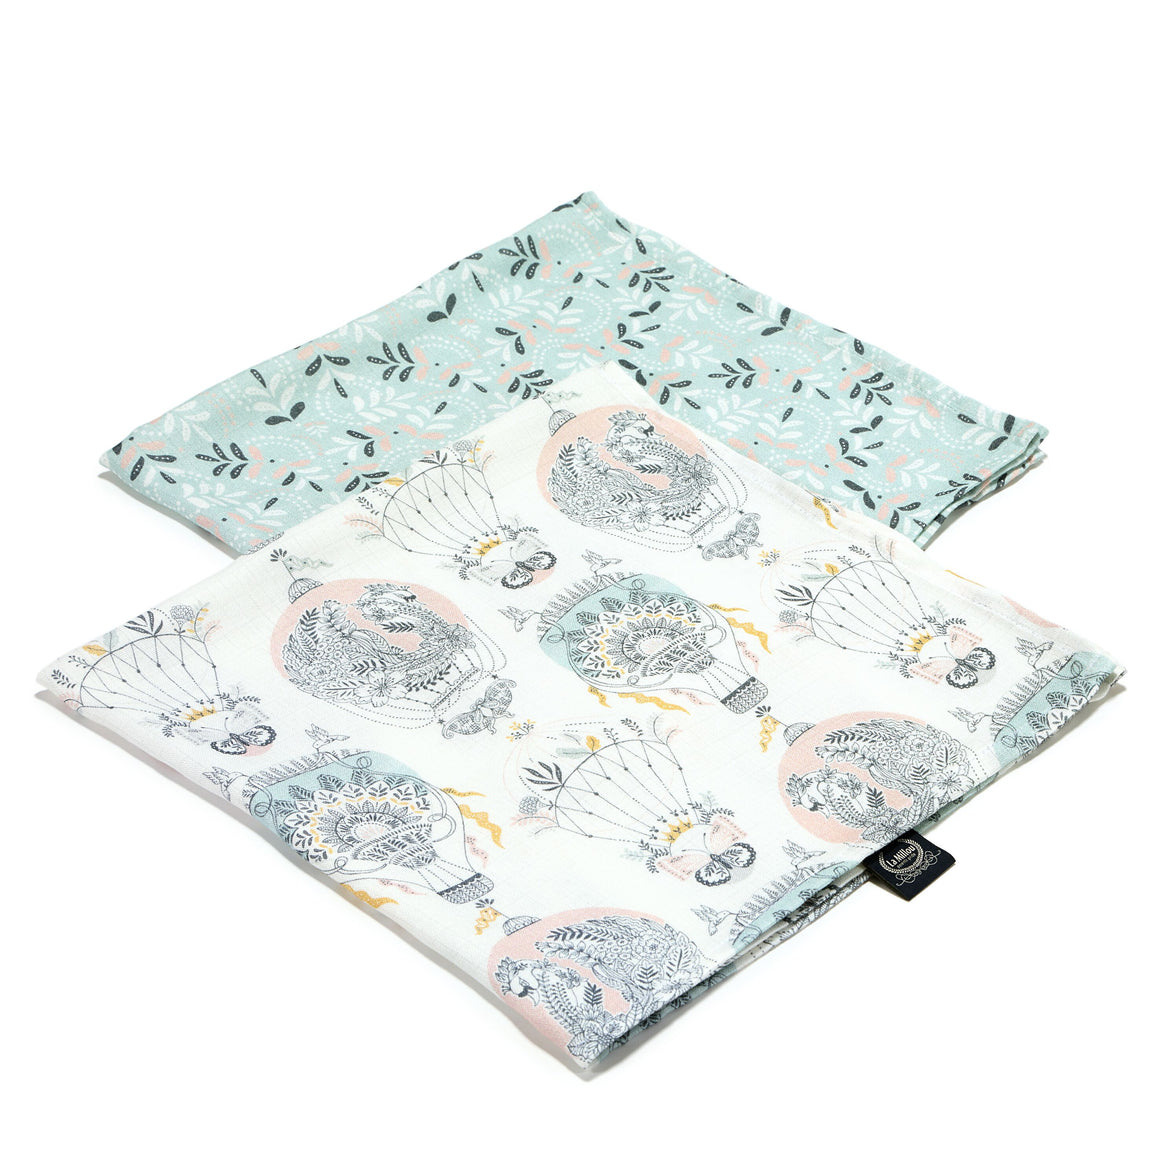 MUSLIN SWADDLE (2-pack) 100% BAMBOO cloth diapers - Cappadocia Dream